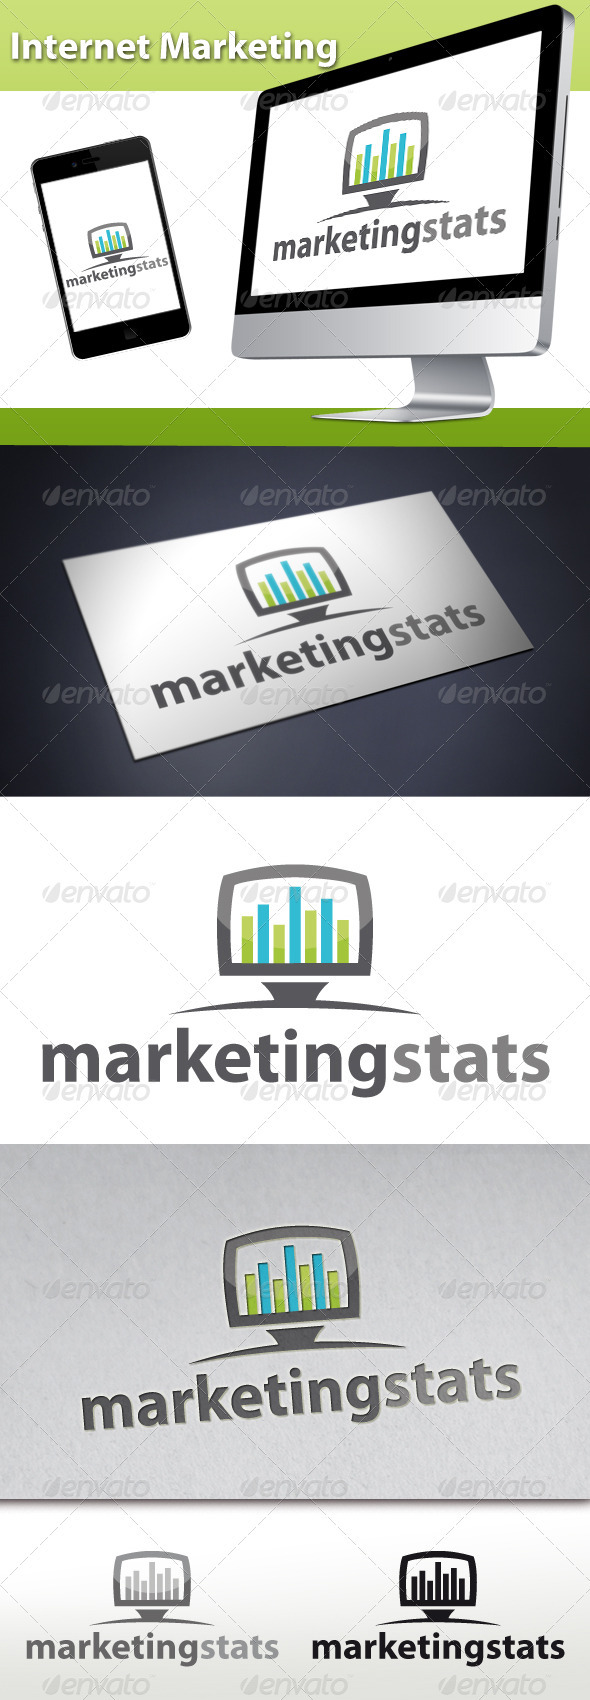 GraphicRiver Internet Marketing Logo 3425377